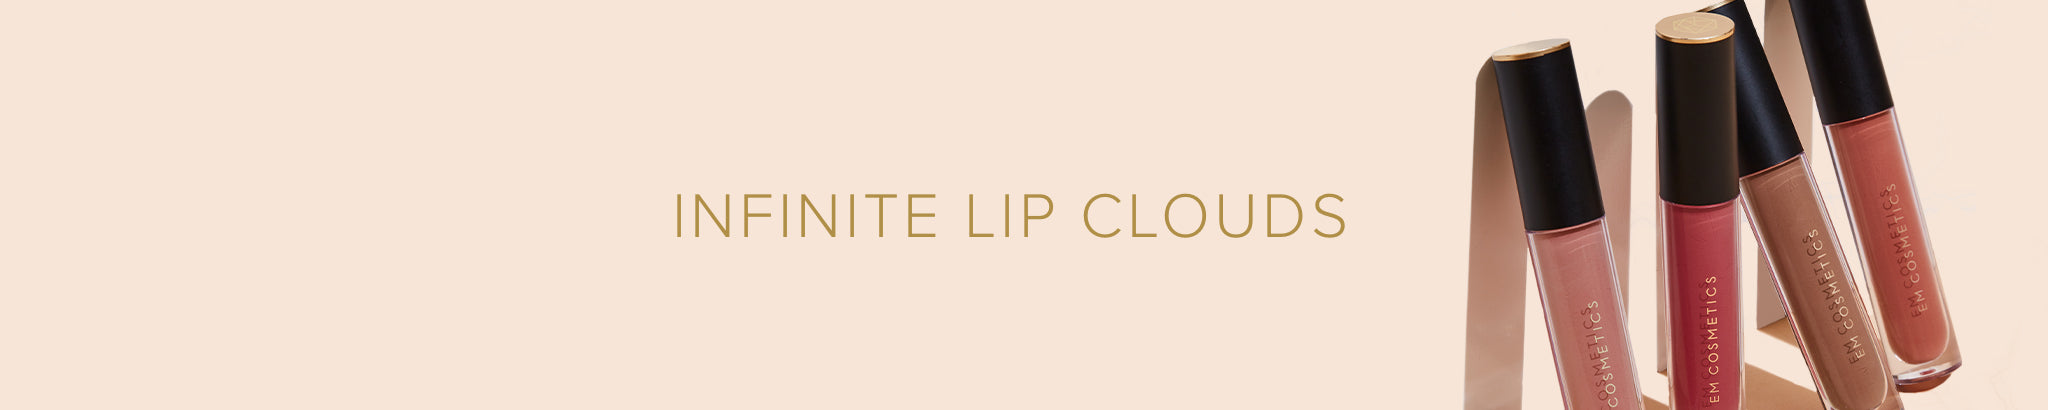 INFINITE LIP CLOUDS